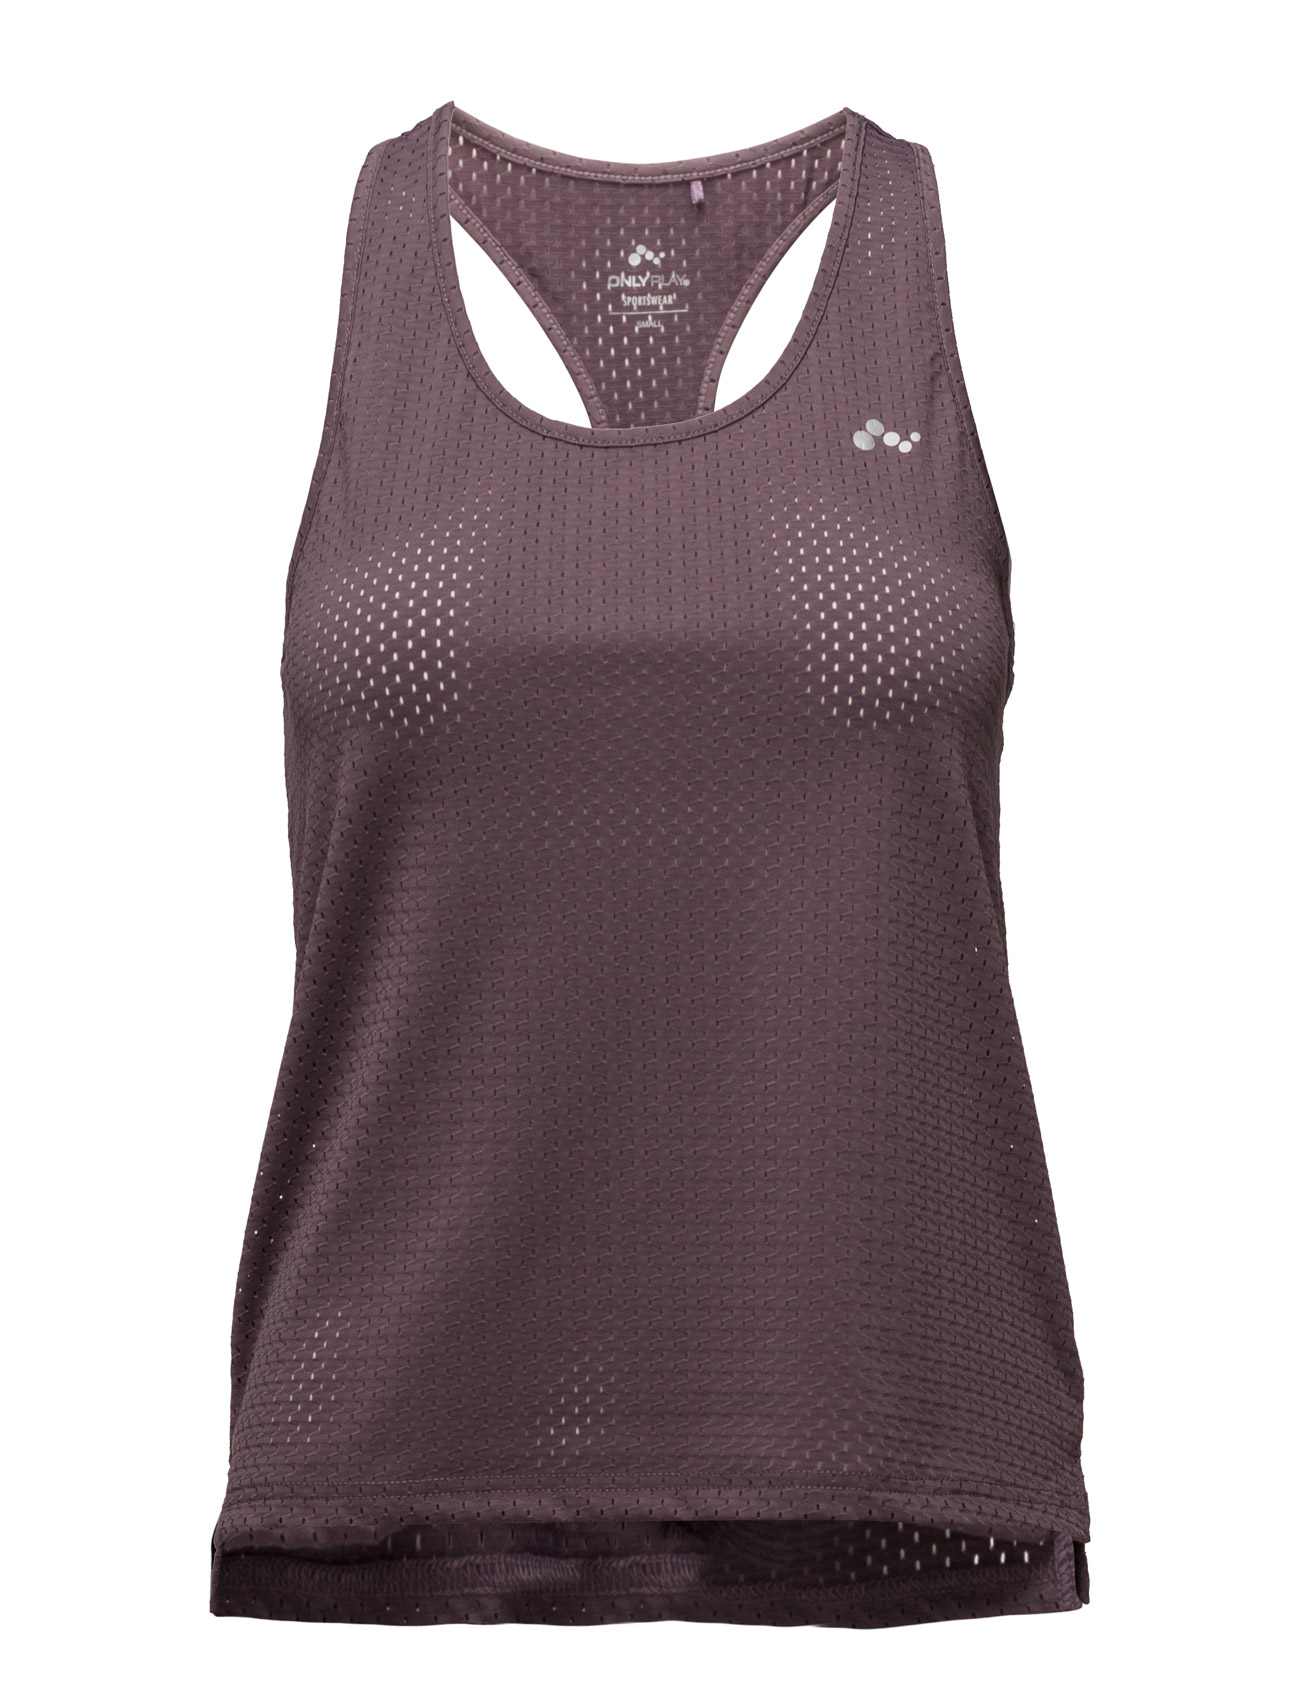 Onpannie Training Tank Top ONLY Sports tank toppe til Damer i